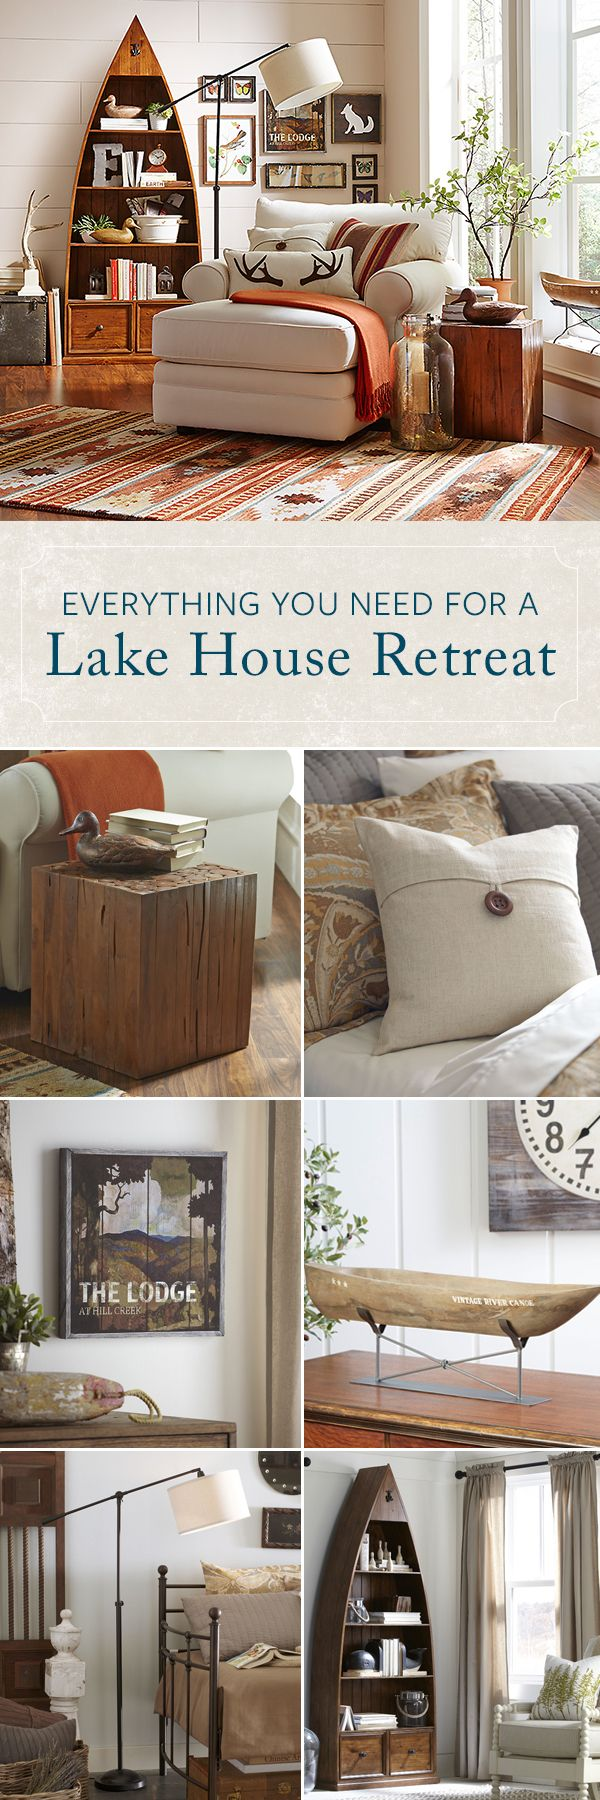 best lake house images on pinterest